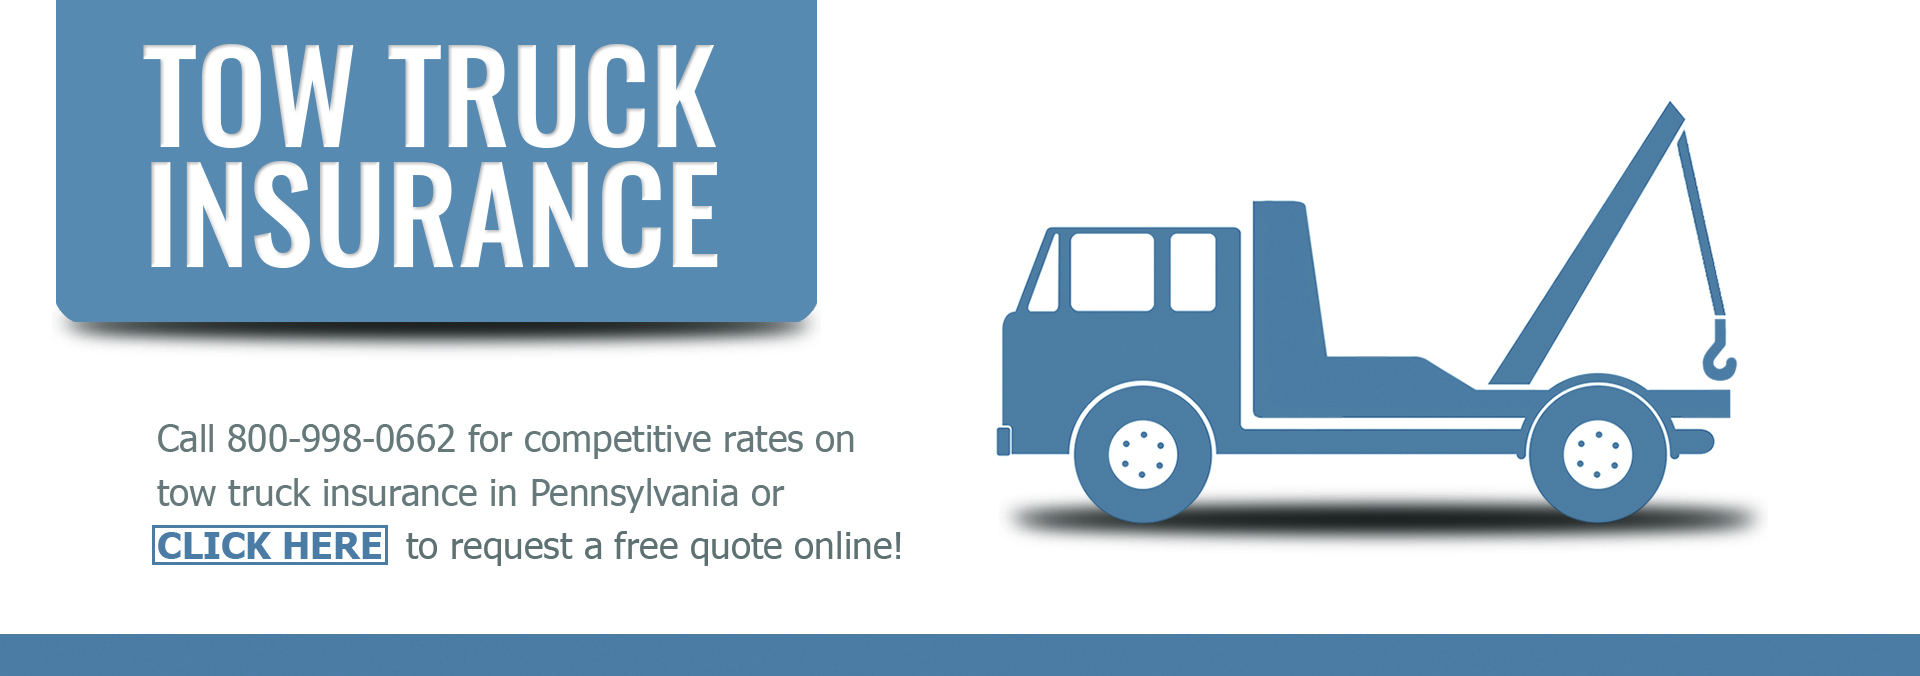 Quotes Tow Truck Insurance Pennsylvania